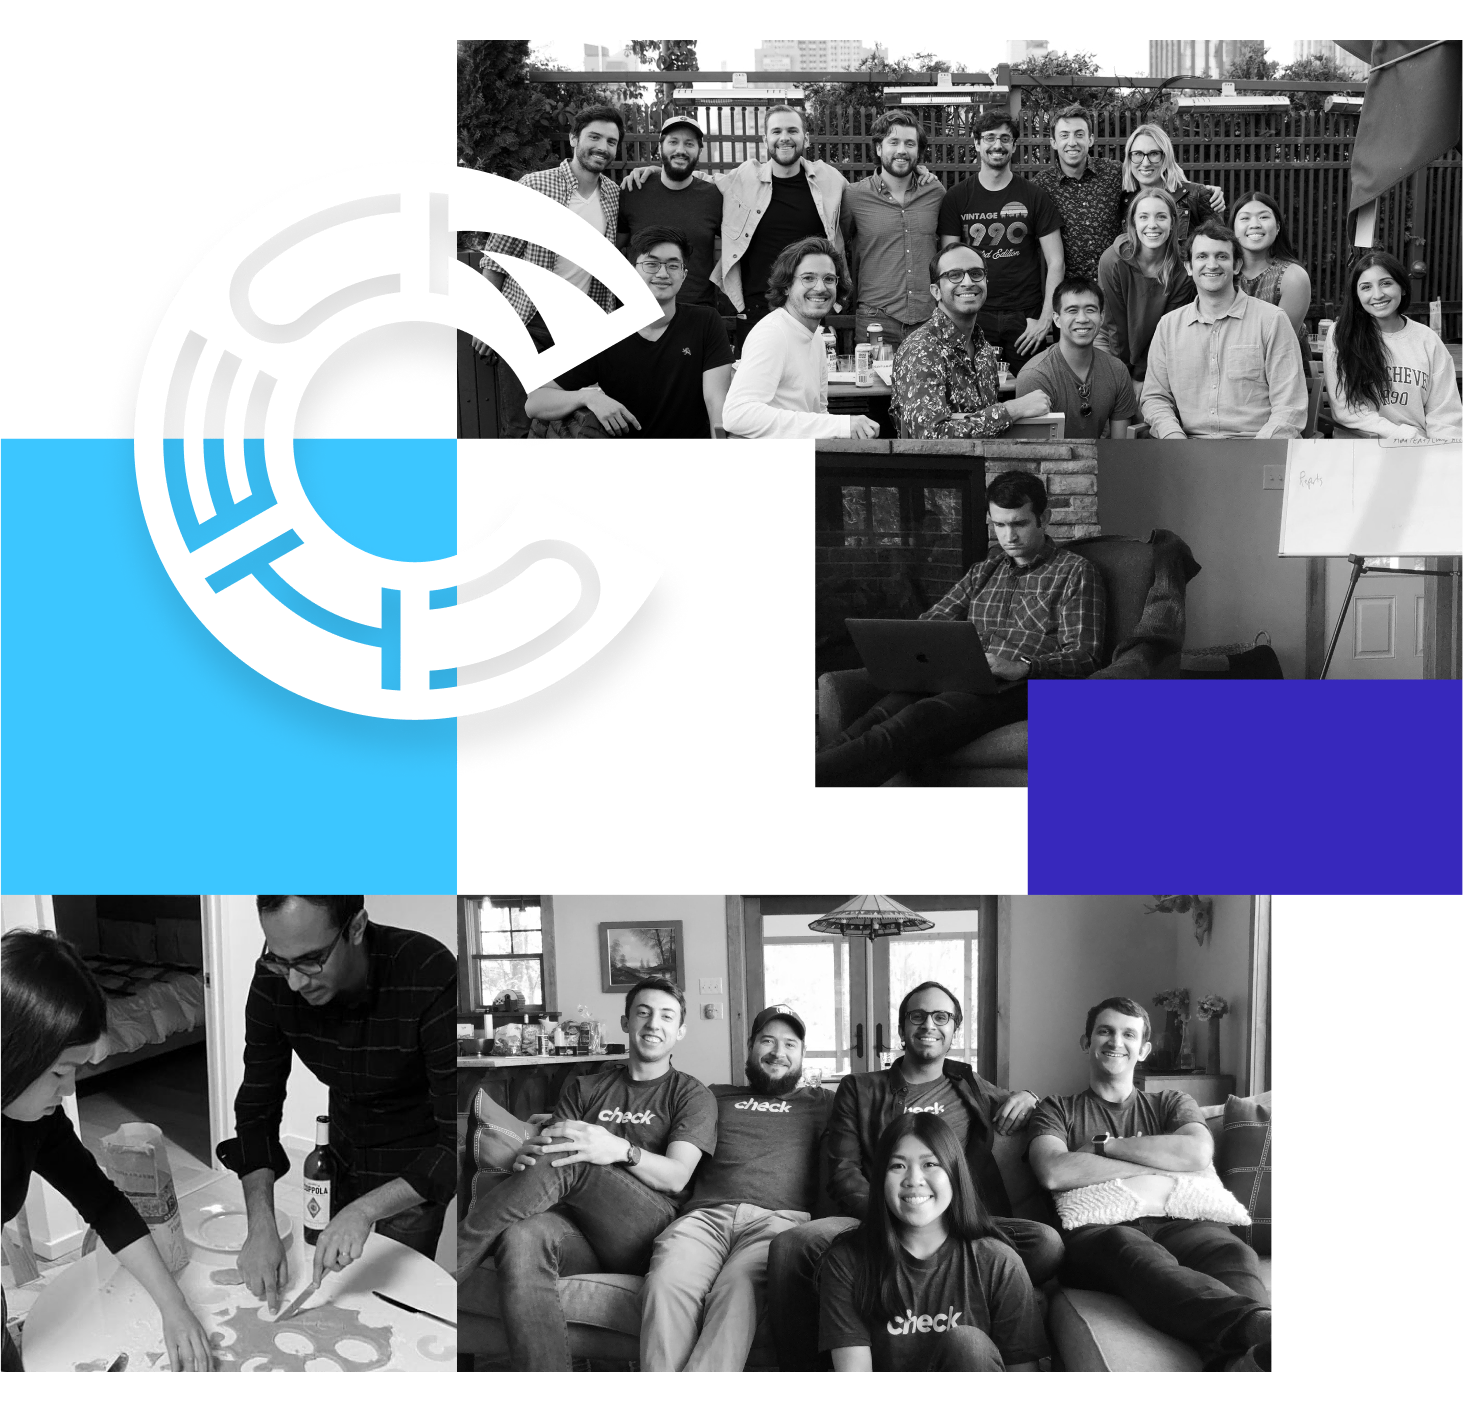 A collage of team member photos